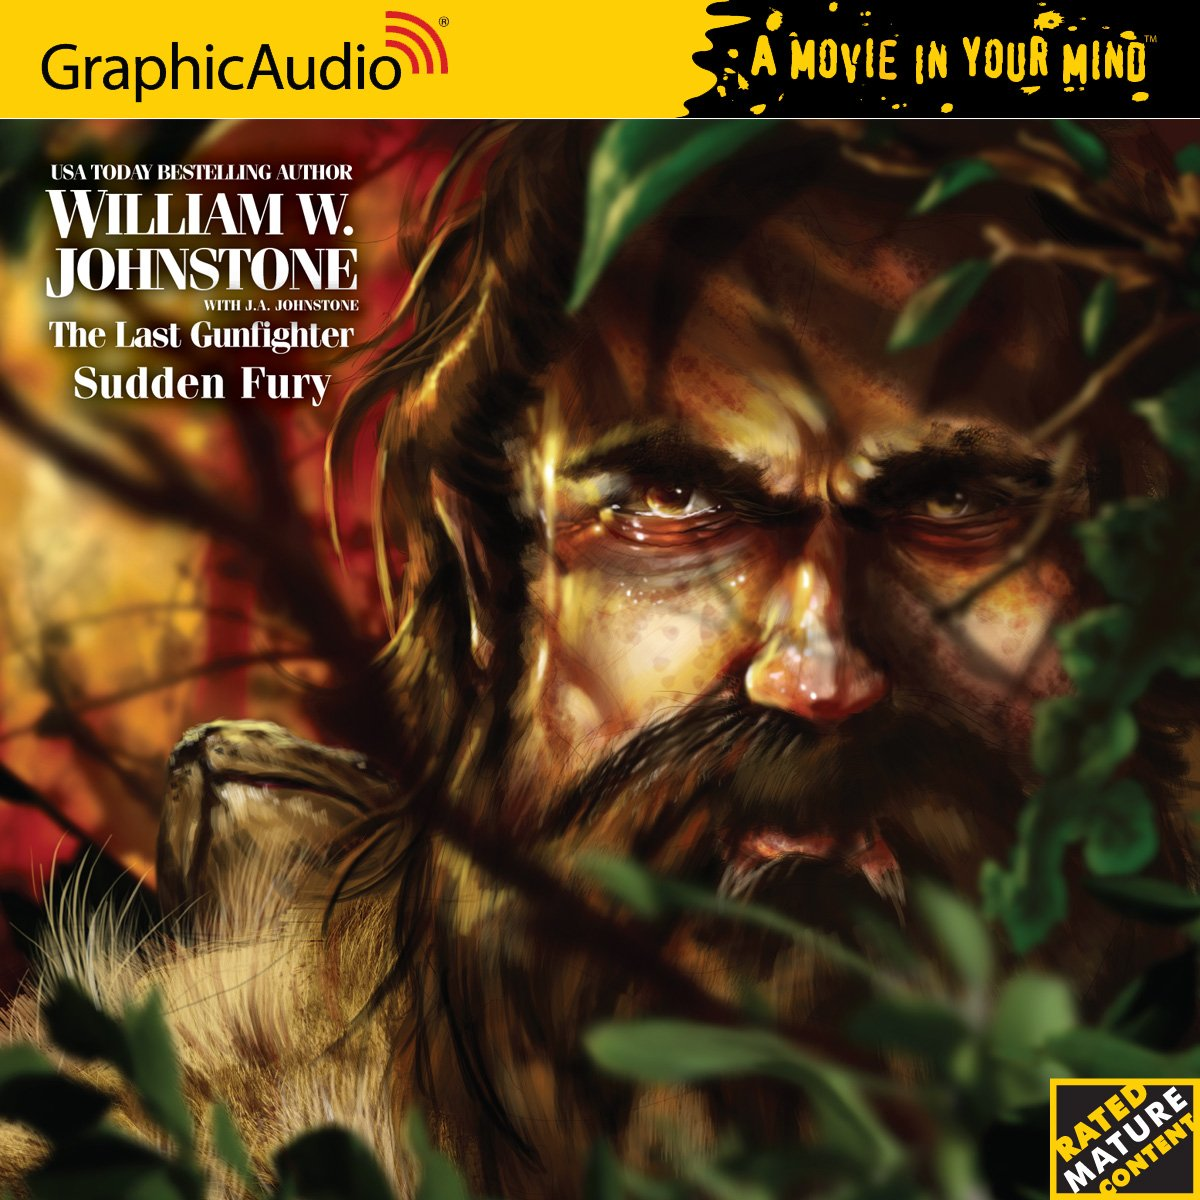 The Last Gunfighter 20  Sudden Fury (The Last Gunfighter - GraphicAudio - A Movie in your Mind)